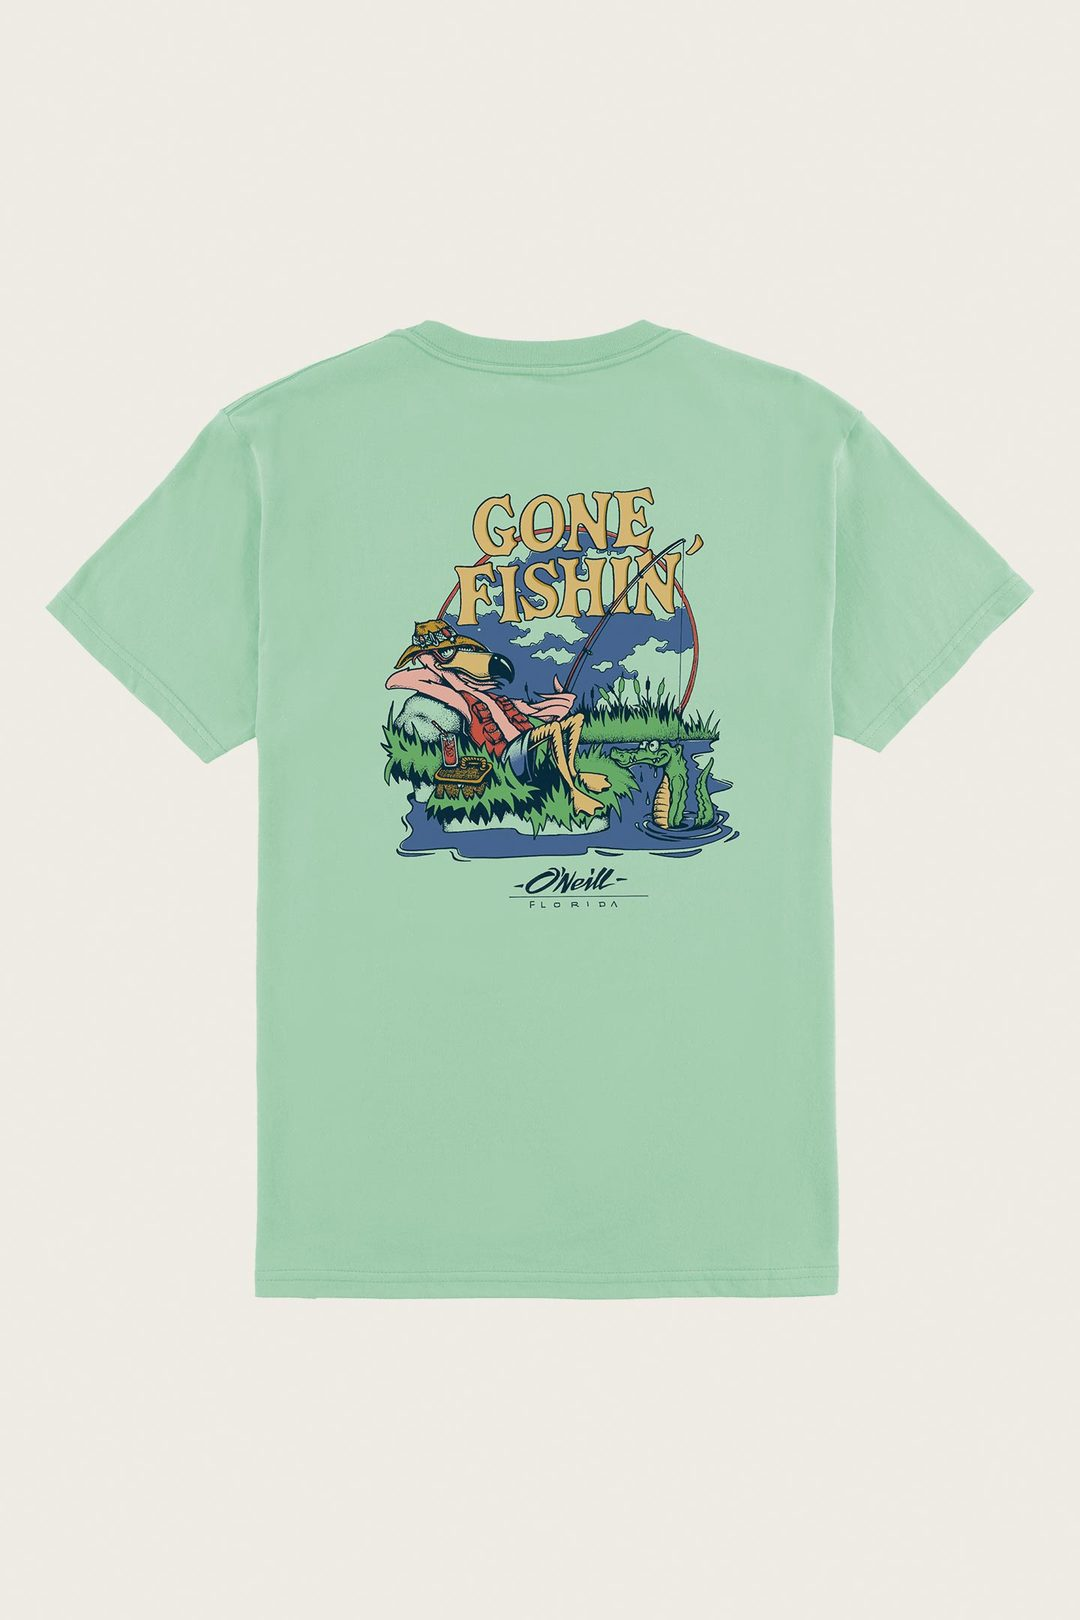 O'Neill Gone Fishin Tee